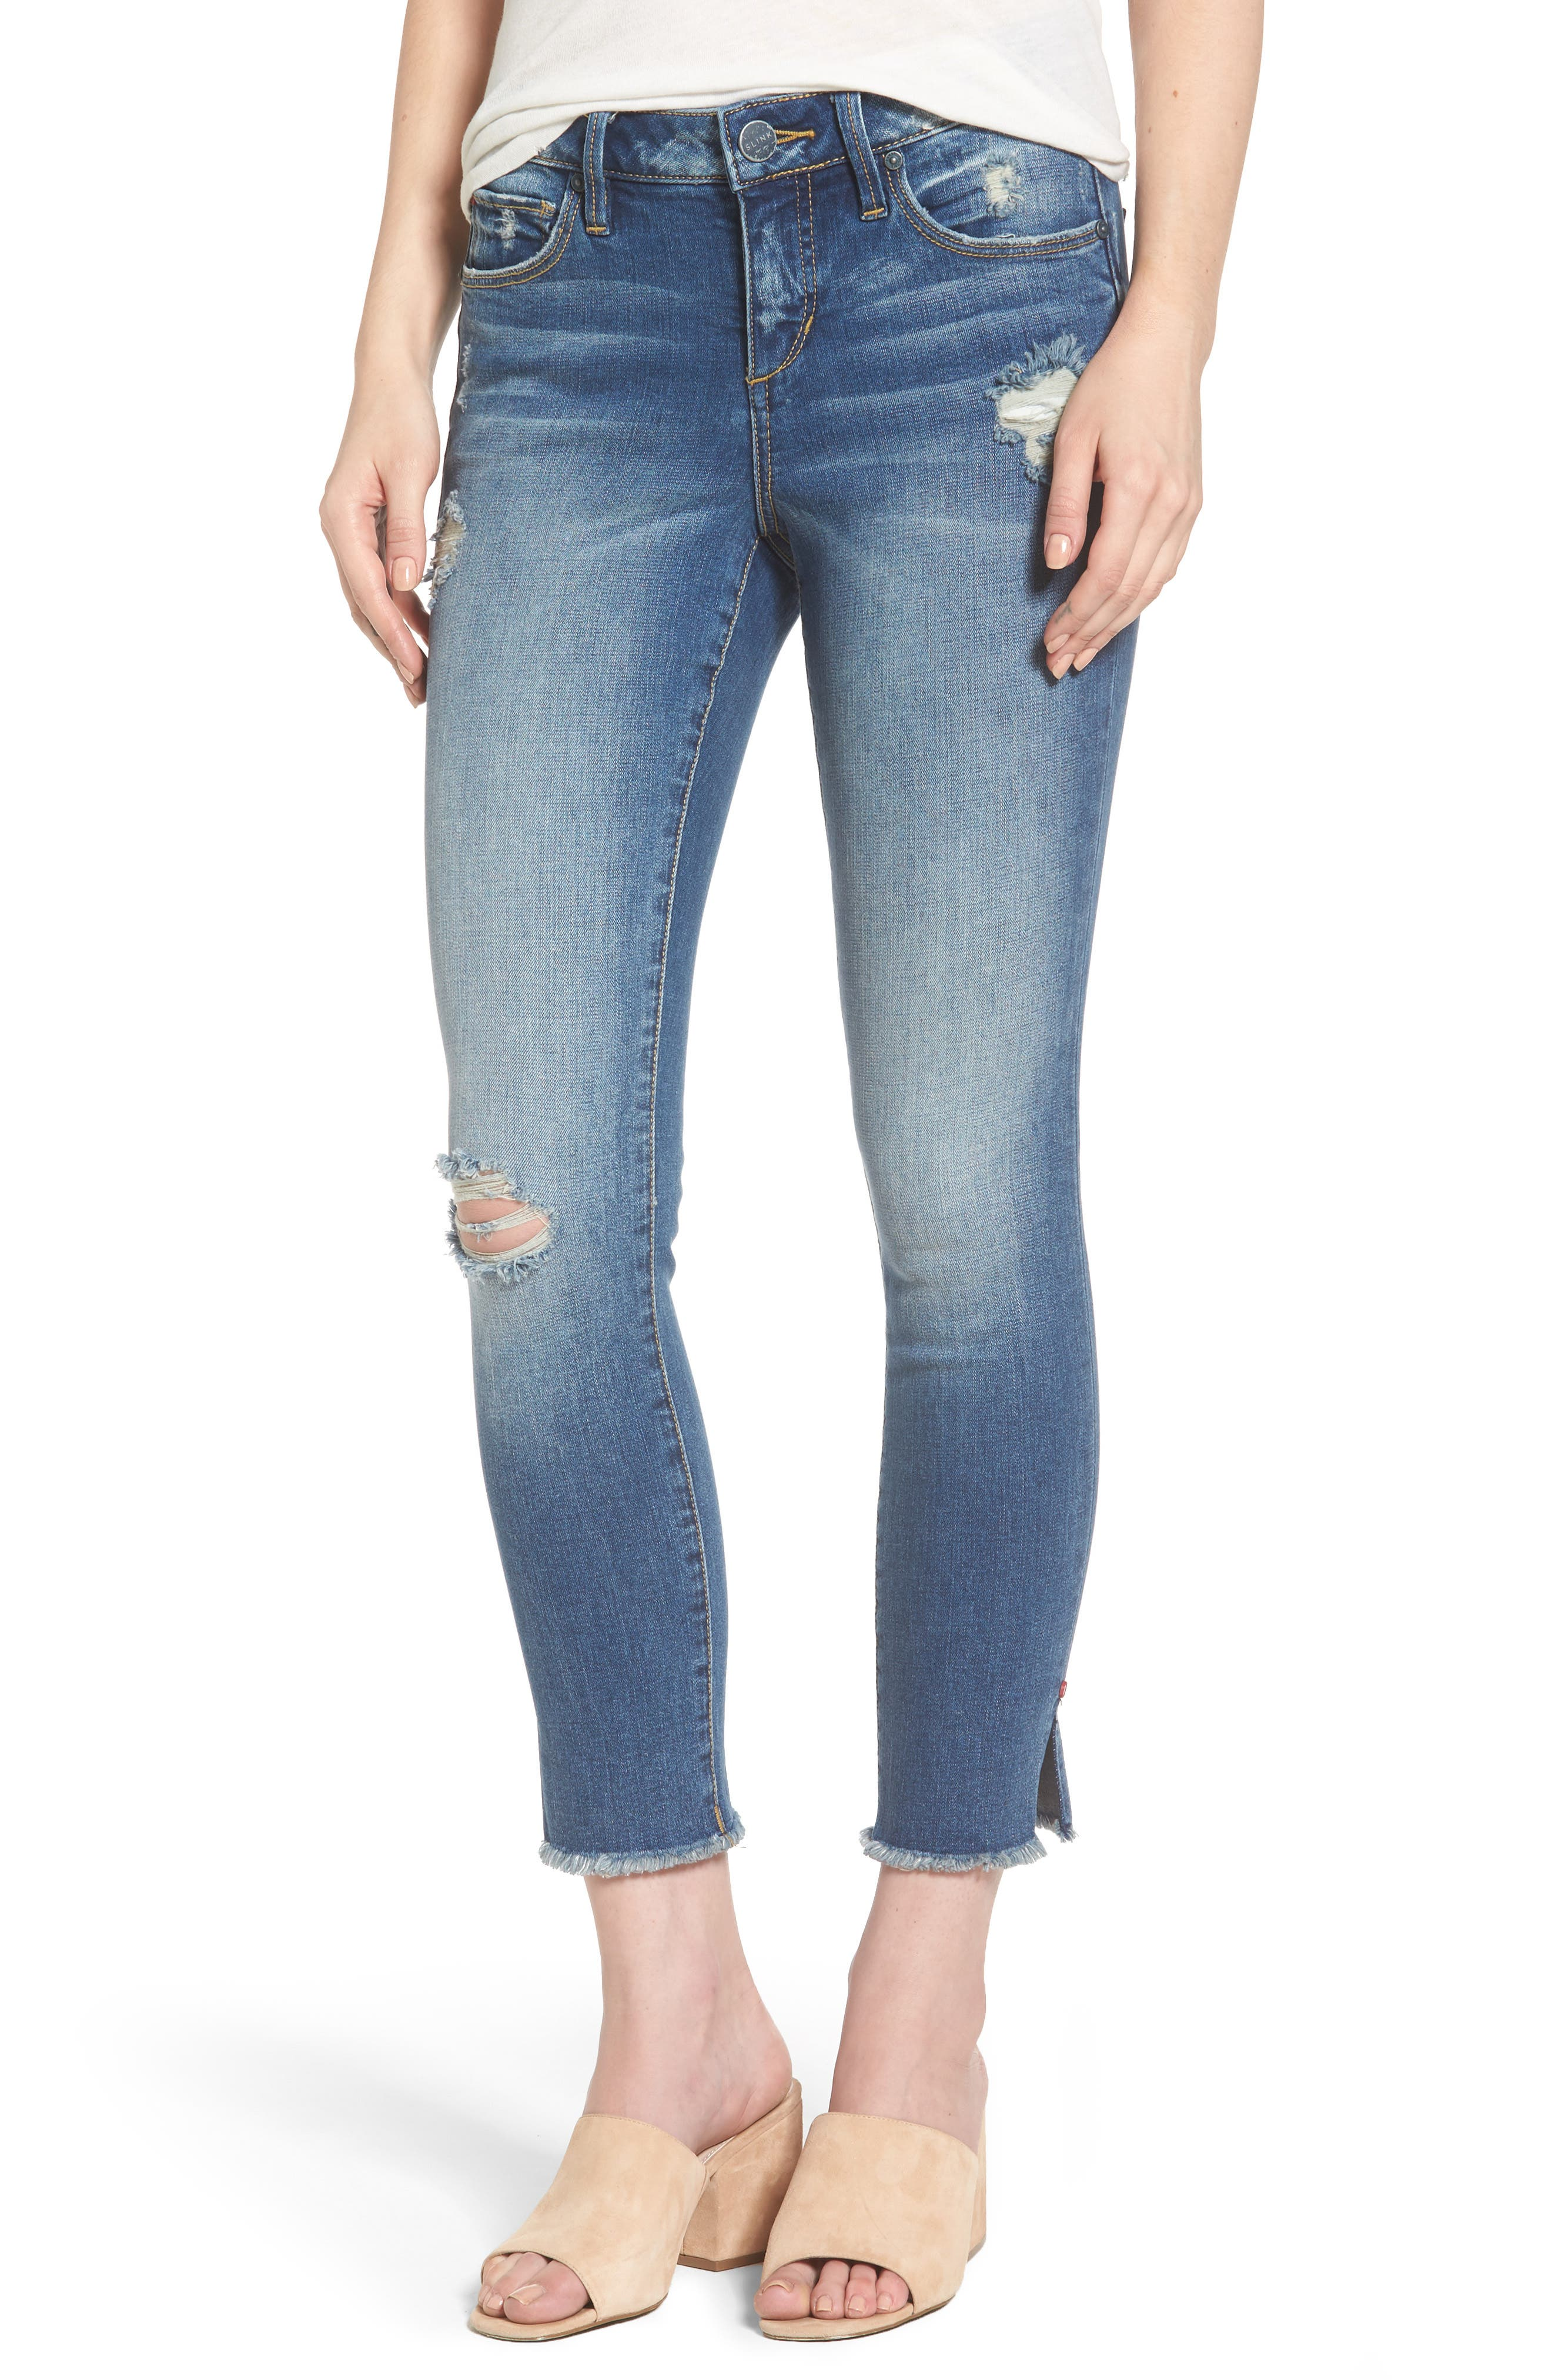 Main Image - SLINK Jeans Frayed Hem Ripped Ankle Jeans (Caralyn)